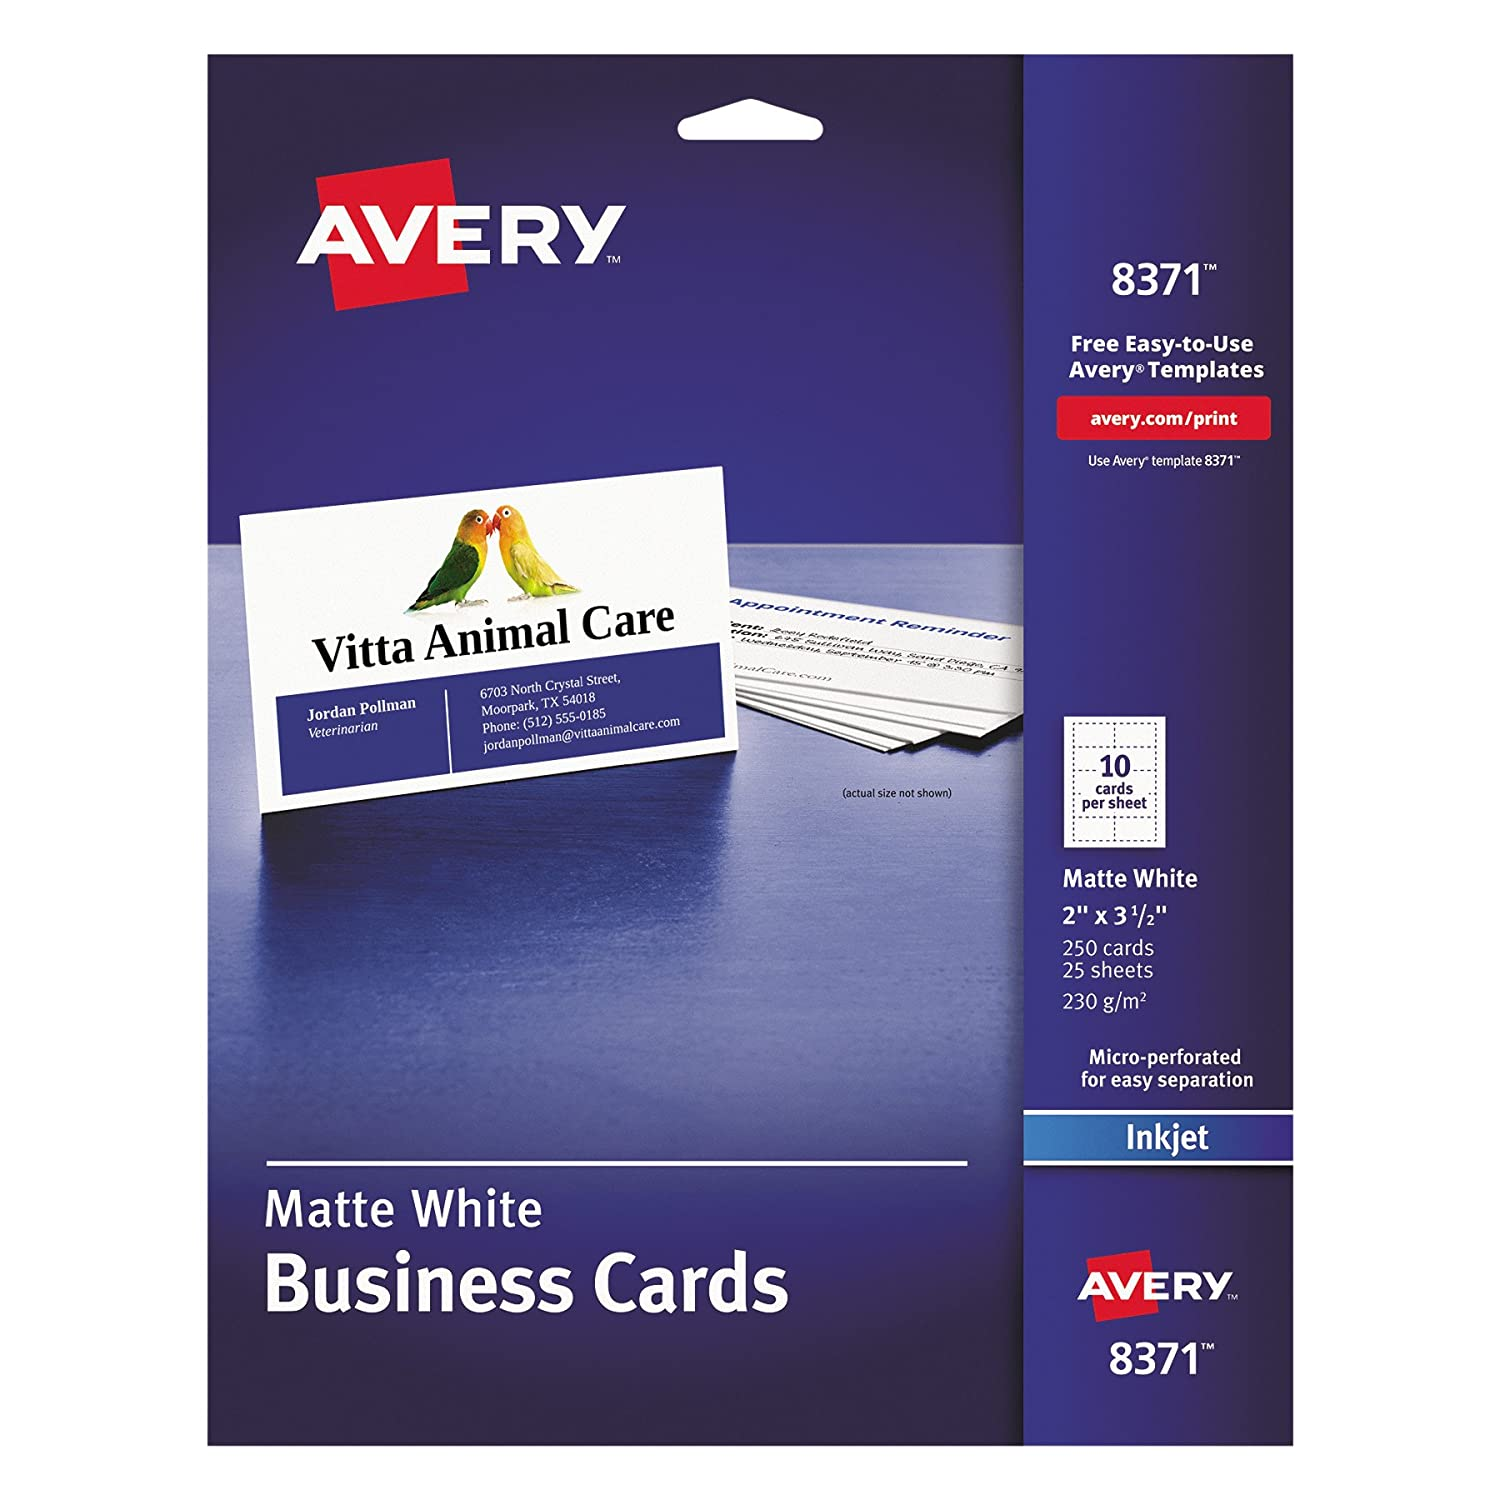 Amazon avery 8371 printable microperf business cards inkjet amazon avery 8371 printable microperf business cards inkjet 2 x 3 12 white matte pack of 250 business card stock office products cheaphphosting